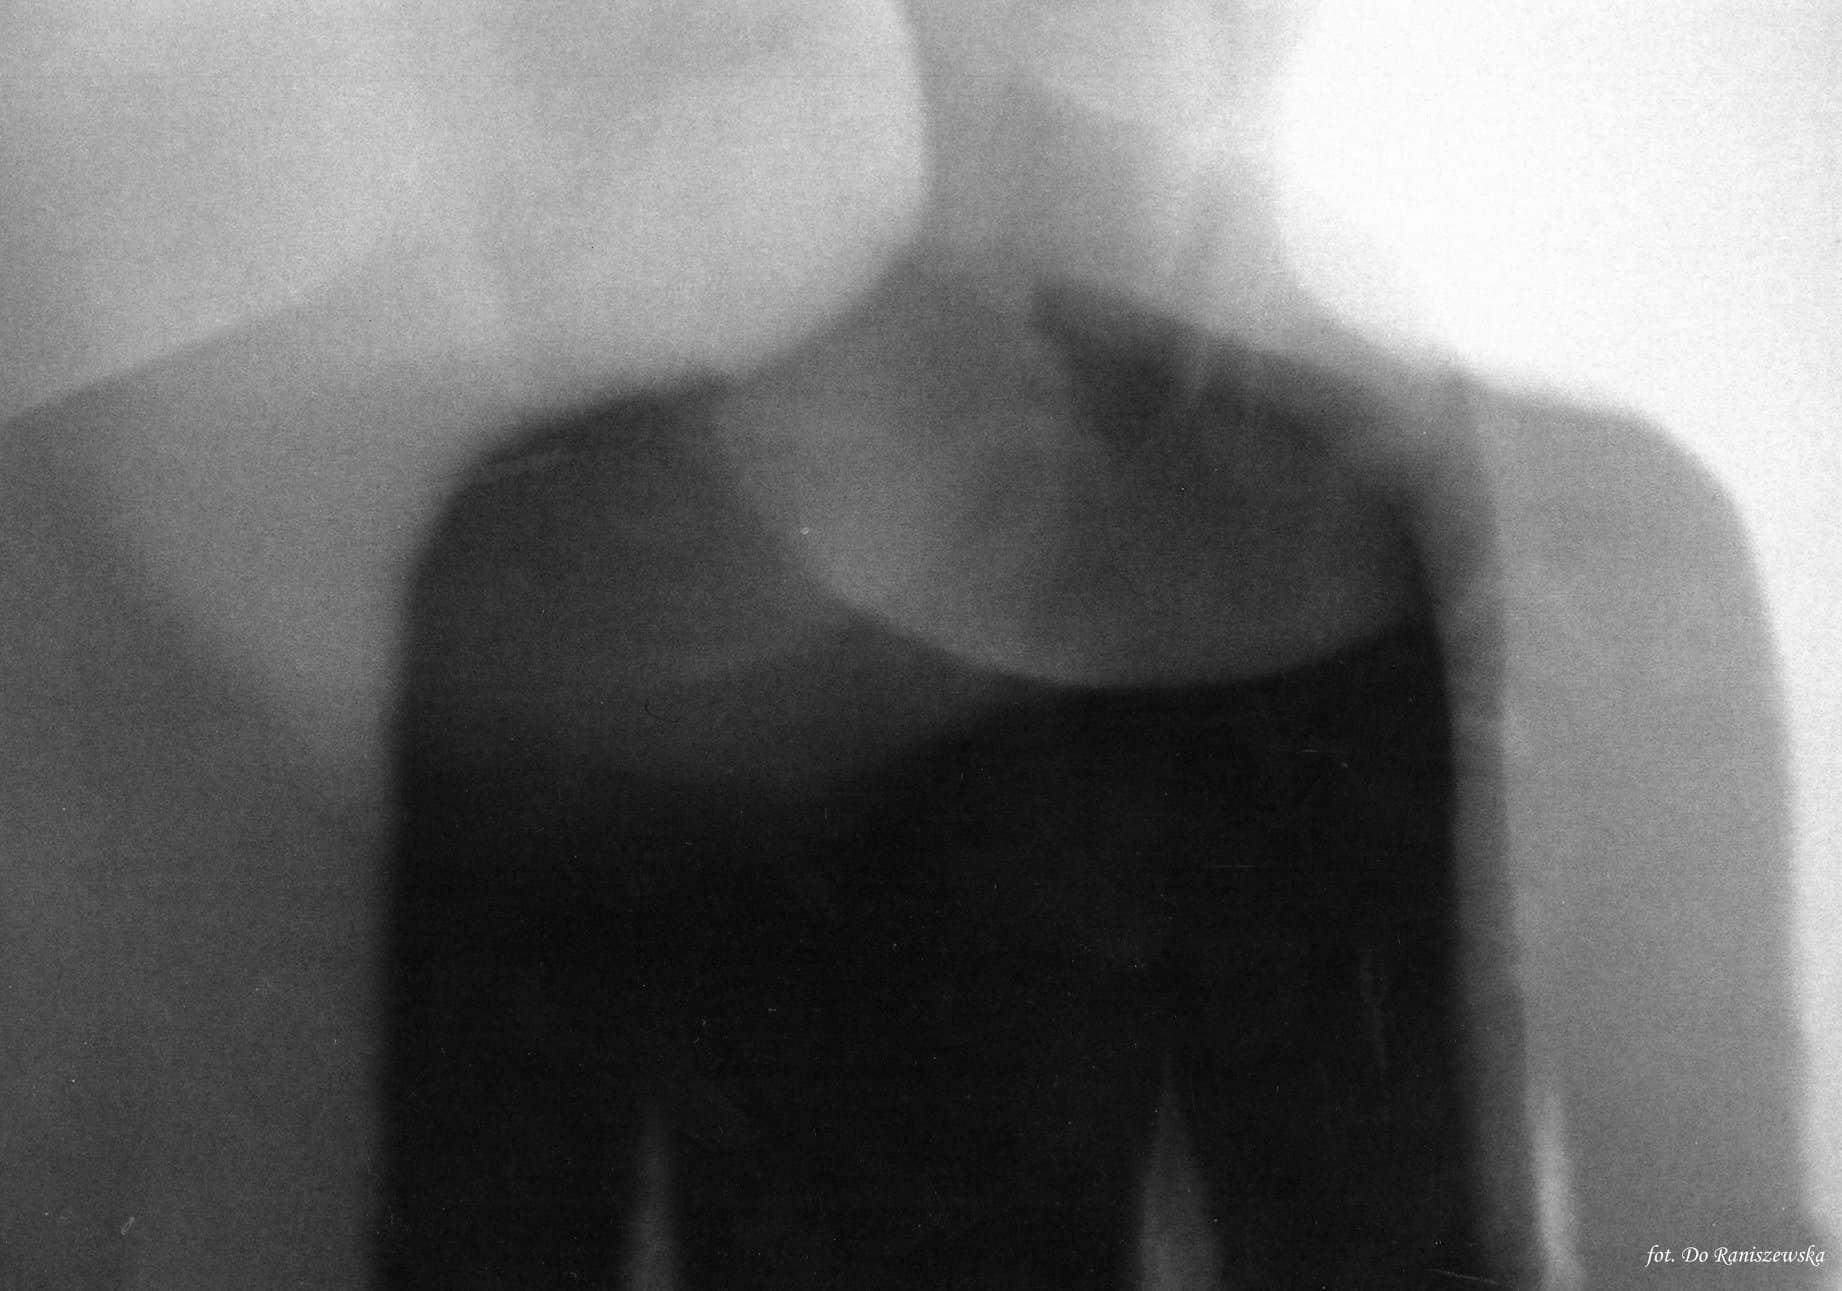 Close up of woman's body with blurred movement in a black and white film photo